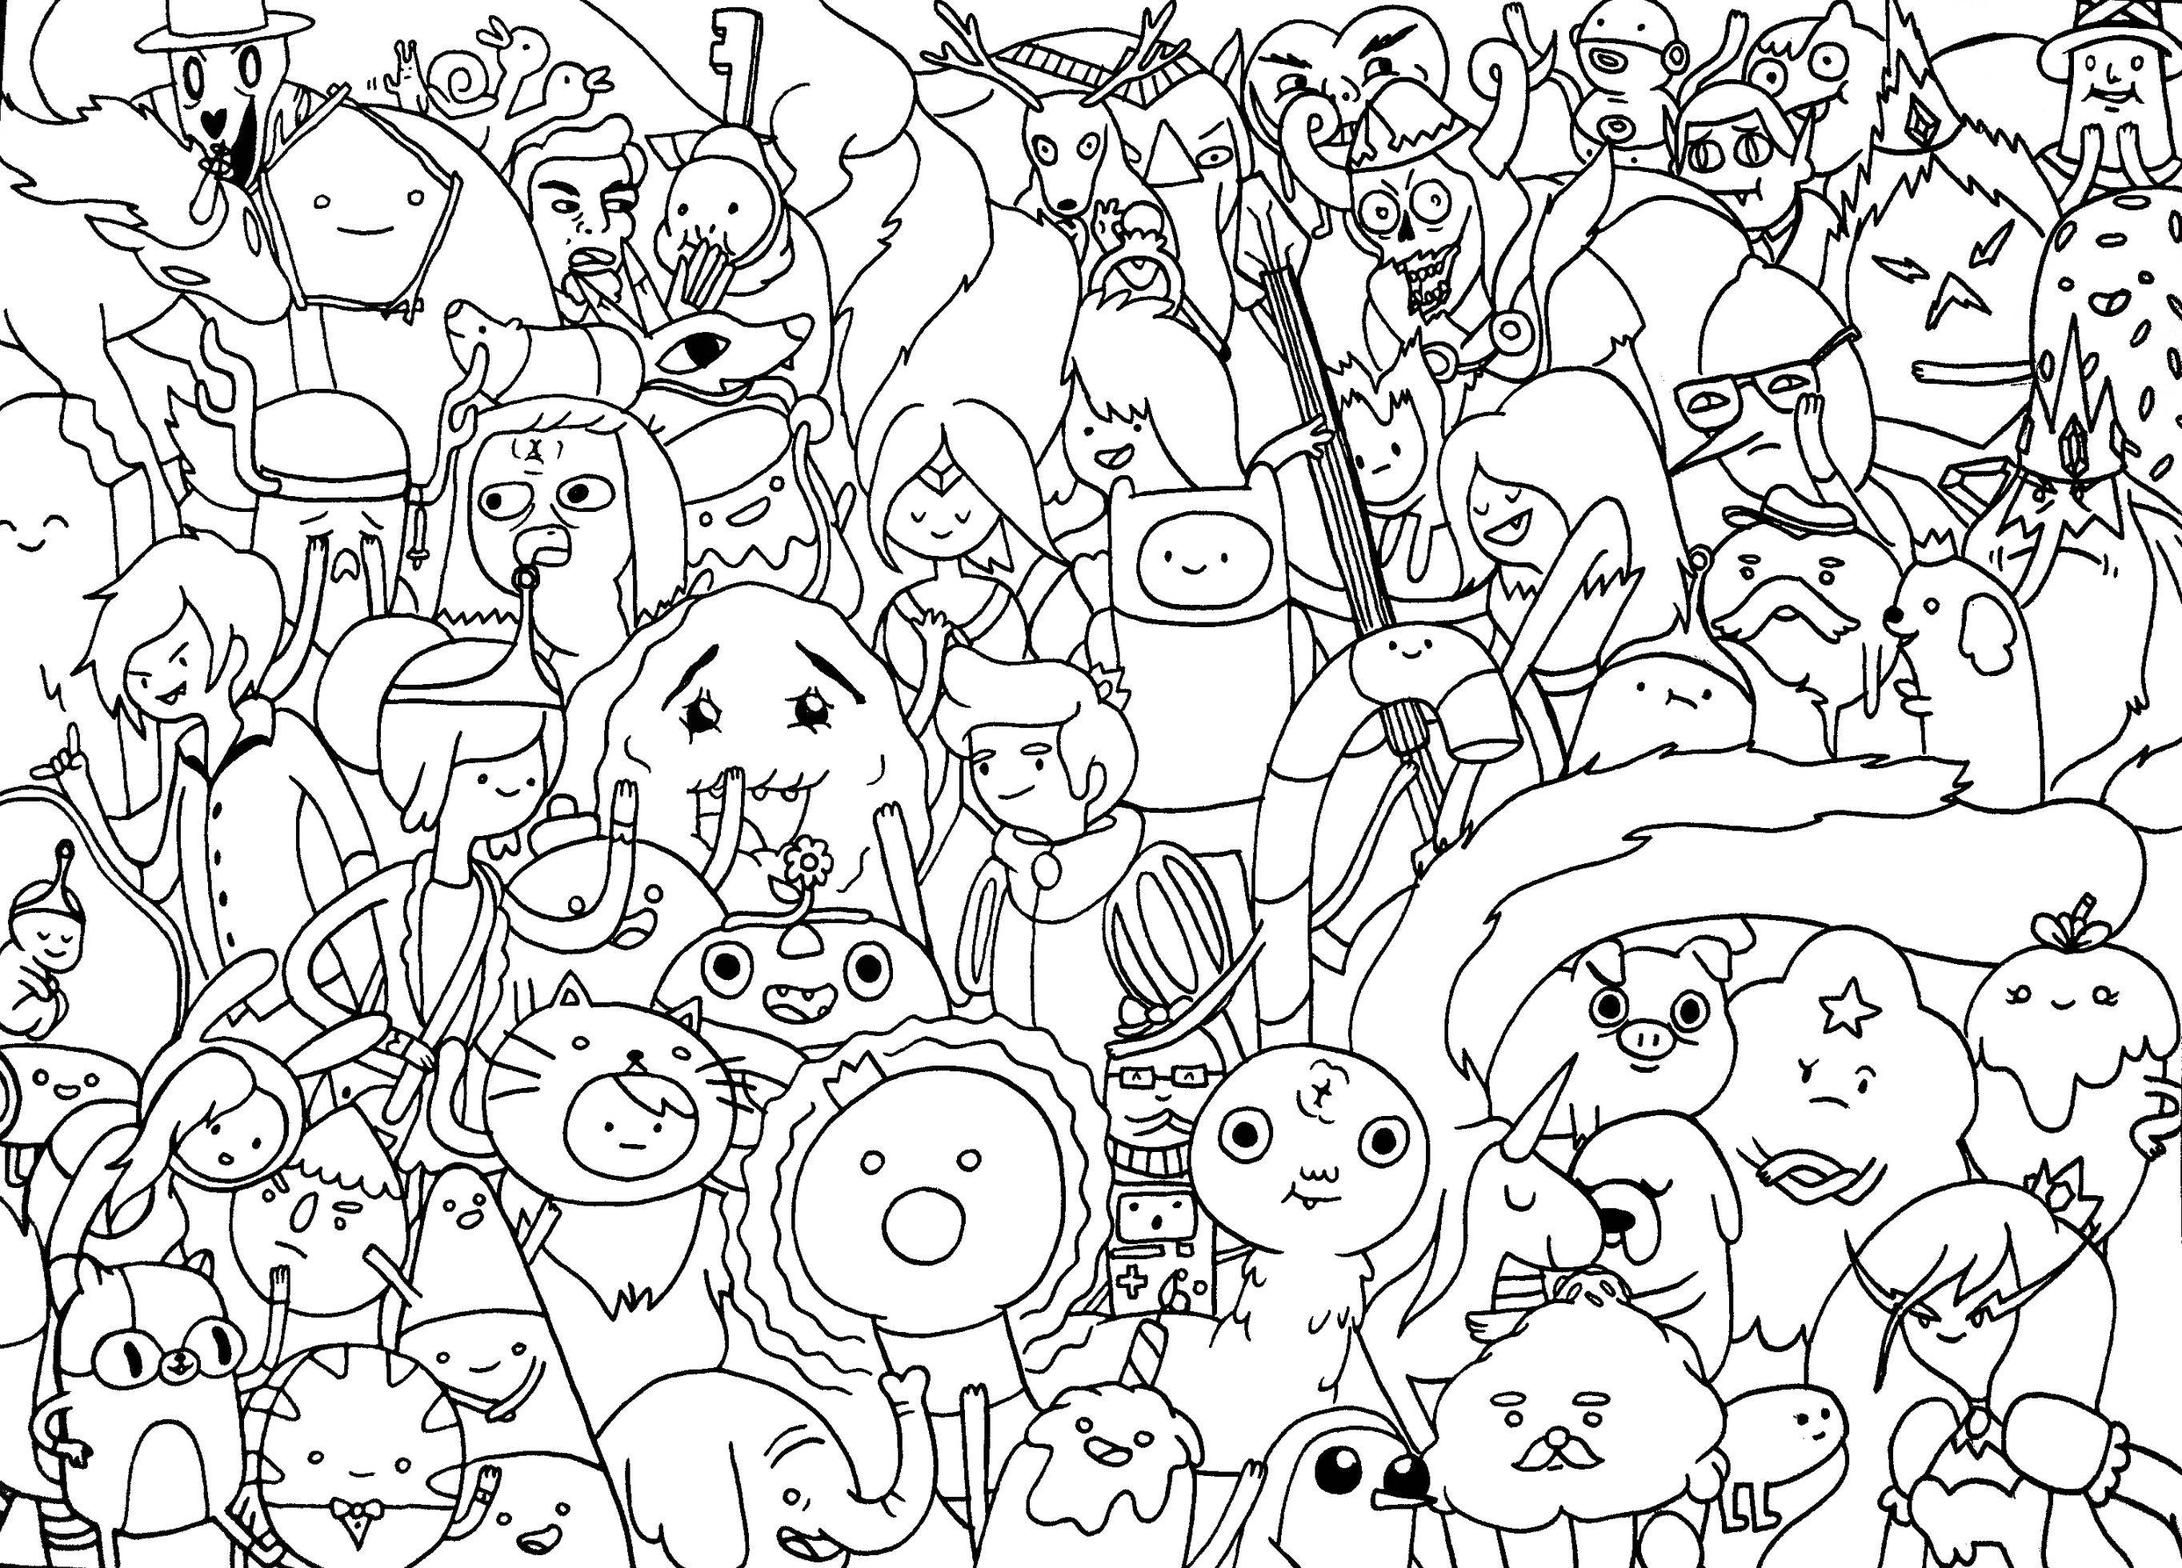 adventure time characters coloring pages - photo#27